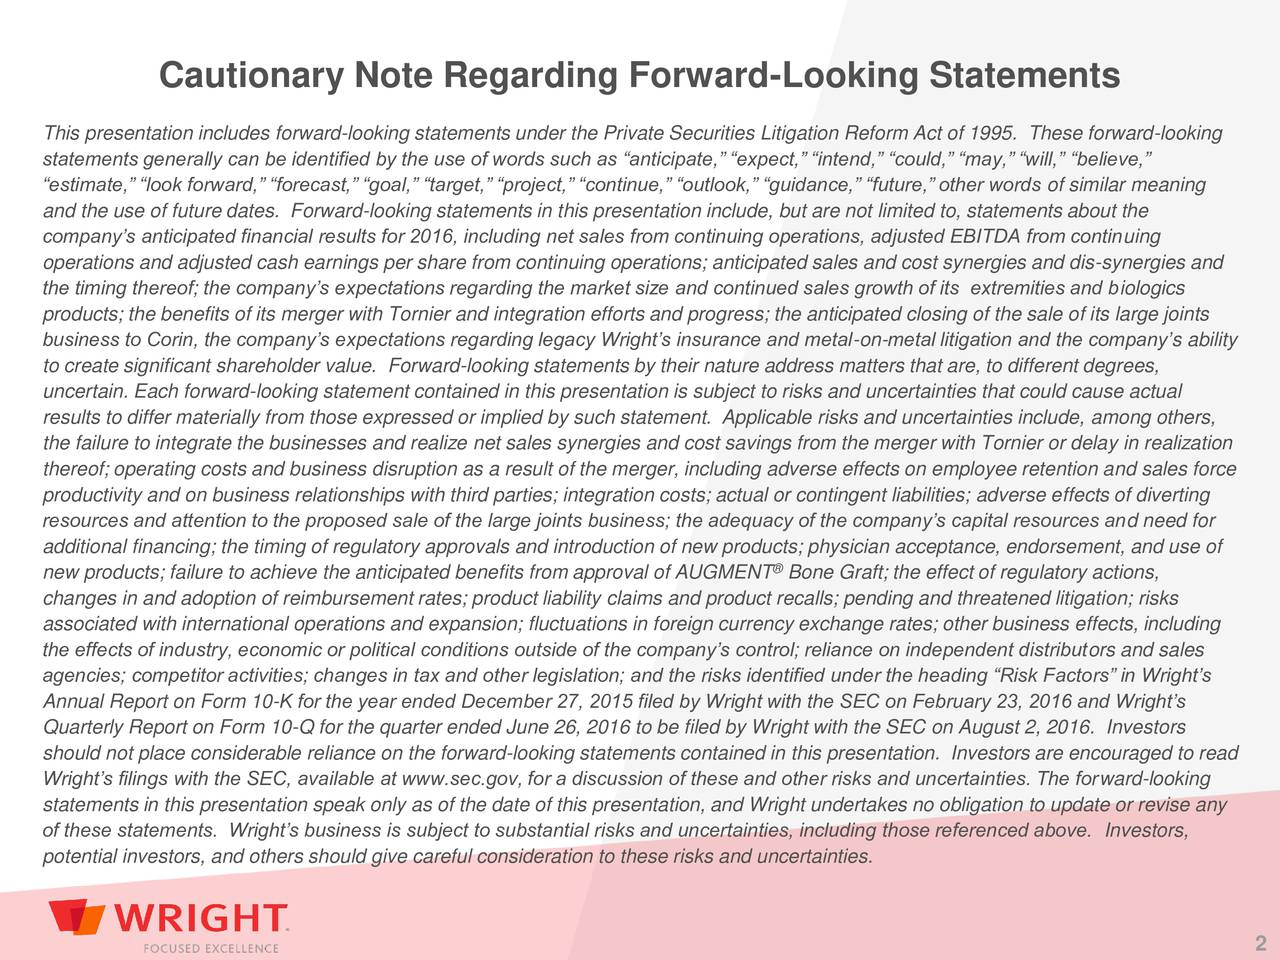 This presentation includes forward-looking statements under the Private Securities Litigation Reform Act of 1995. These forward-looking statements generally can be identified by the use of words such as anticipate, expect, intend, could, may, will, believe, estimate, look forward, forecast, goal, target, project, continue, outlook, guidance, future, other words of similar meaning and the use of future dates. Forward-looking statements in this presentation include, but are not limited to, statements about the companys anticipated financial results for 2016, including net sales from continuing operations, adjusted EBITDA from continuing operations and adjusted cash earnings per share from continuing operations; anticipated sales and cost synergies and dis-synergies and the timing thereof; the companys expectations regarding the market size and continued sales growth of its extremities and biologics products; the benefits of its merger with Tornier and integration efforts and progress; the anticipated closing of the sale of its large joints business to Corin, the companys expectations regarding legacy Wrights insurance and metal-on-metal litigation and the companys ability to create significant shareholder value. Forward-looking statements by their nature address matters that are, to different degrees, uncertain. Each forward-looking statement contained in this presentation is subject to risks and uncertainties that could cause actual results to differ materially from those expressed or implied by such statement. Applicable risks and uncertainties include, among others, the failure to integrate the businesses and realize net sales synergies and cost savings from the merger with Tornier or delay in realization thereof; operating costs and business disruption as a result of the merger, including adverse effects on employee retention and sales force productivity and on business relationships with third parties; integration costs; actual or contingent liabilities; adverse 